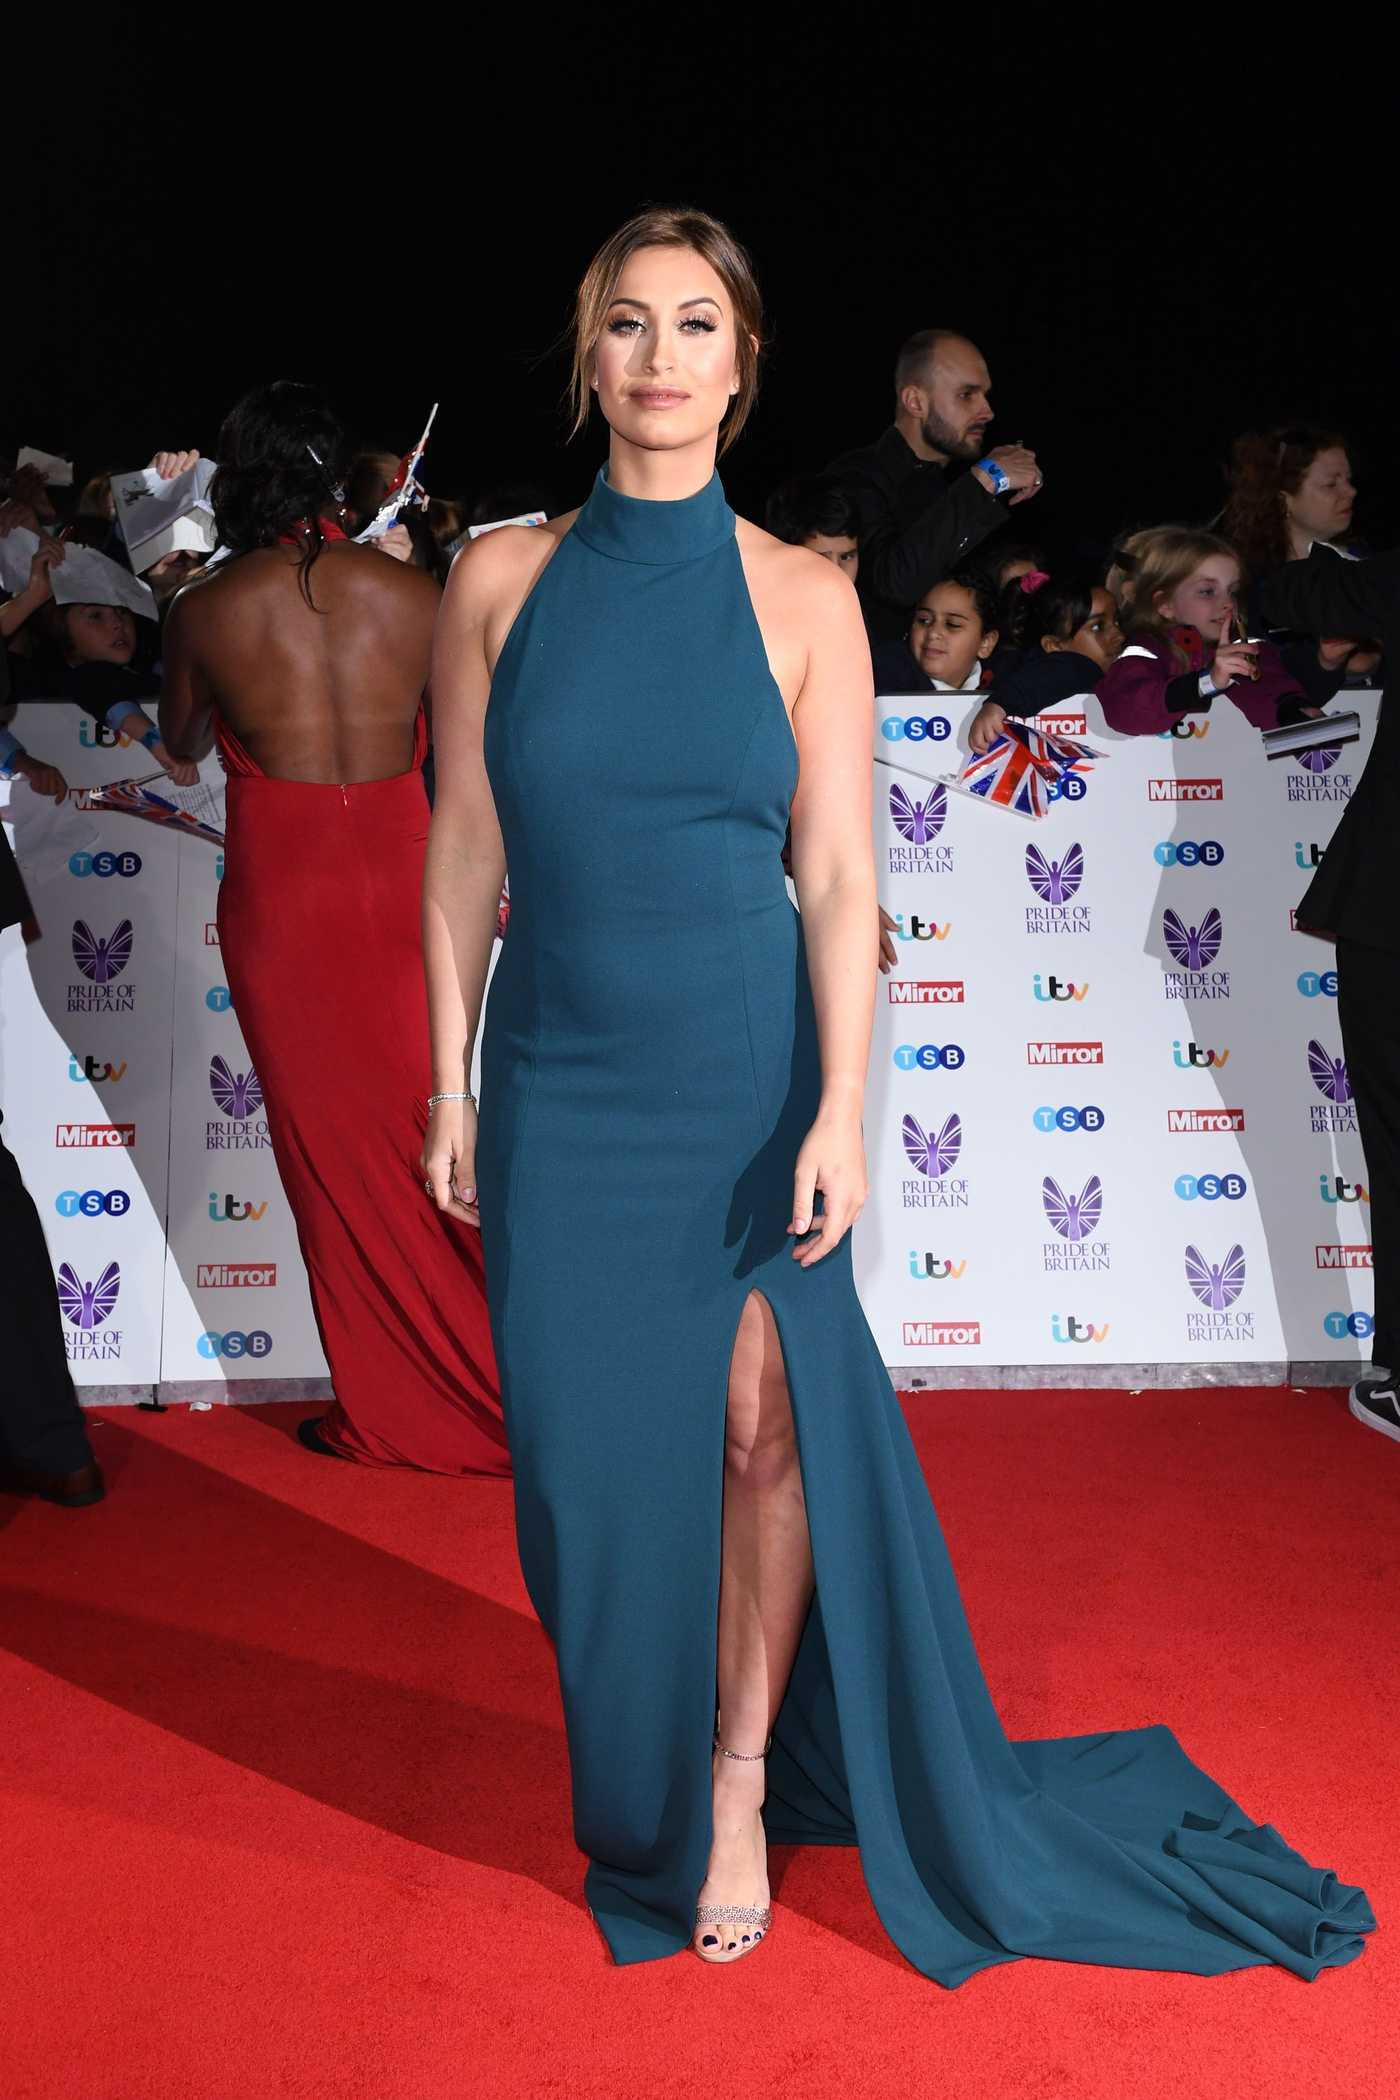 Ferne McCann at the Pride of Britain Awards at the Grosvenor House in London 10/31/2016